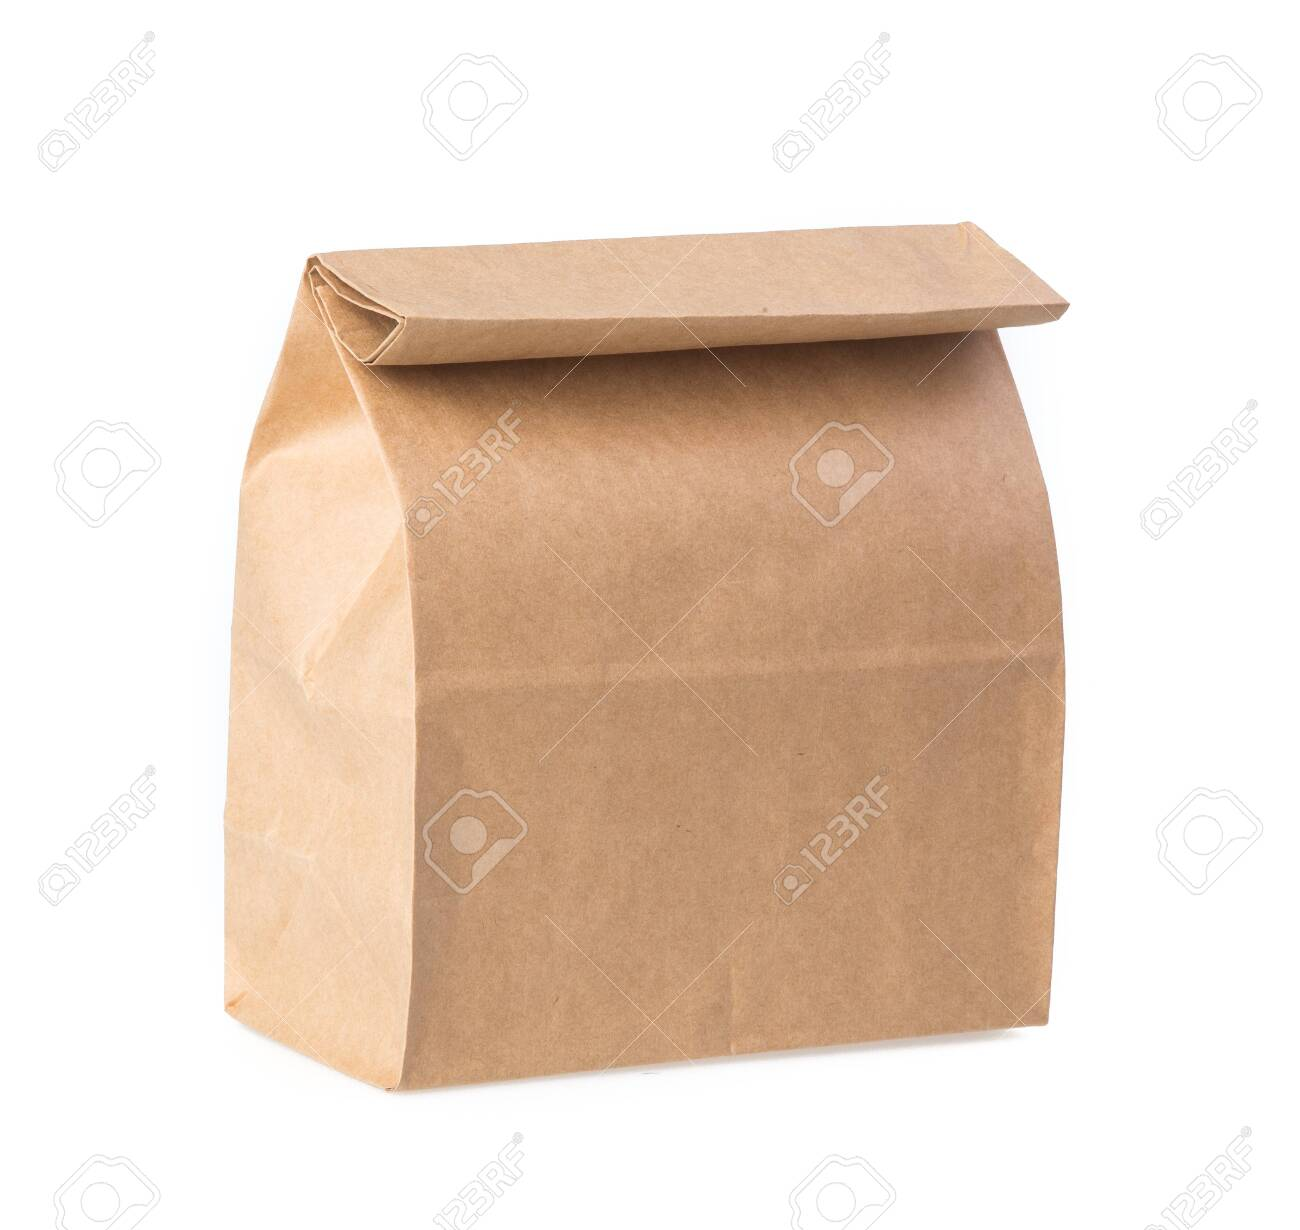 Brown paper bag isolated on white - 129542177